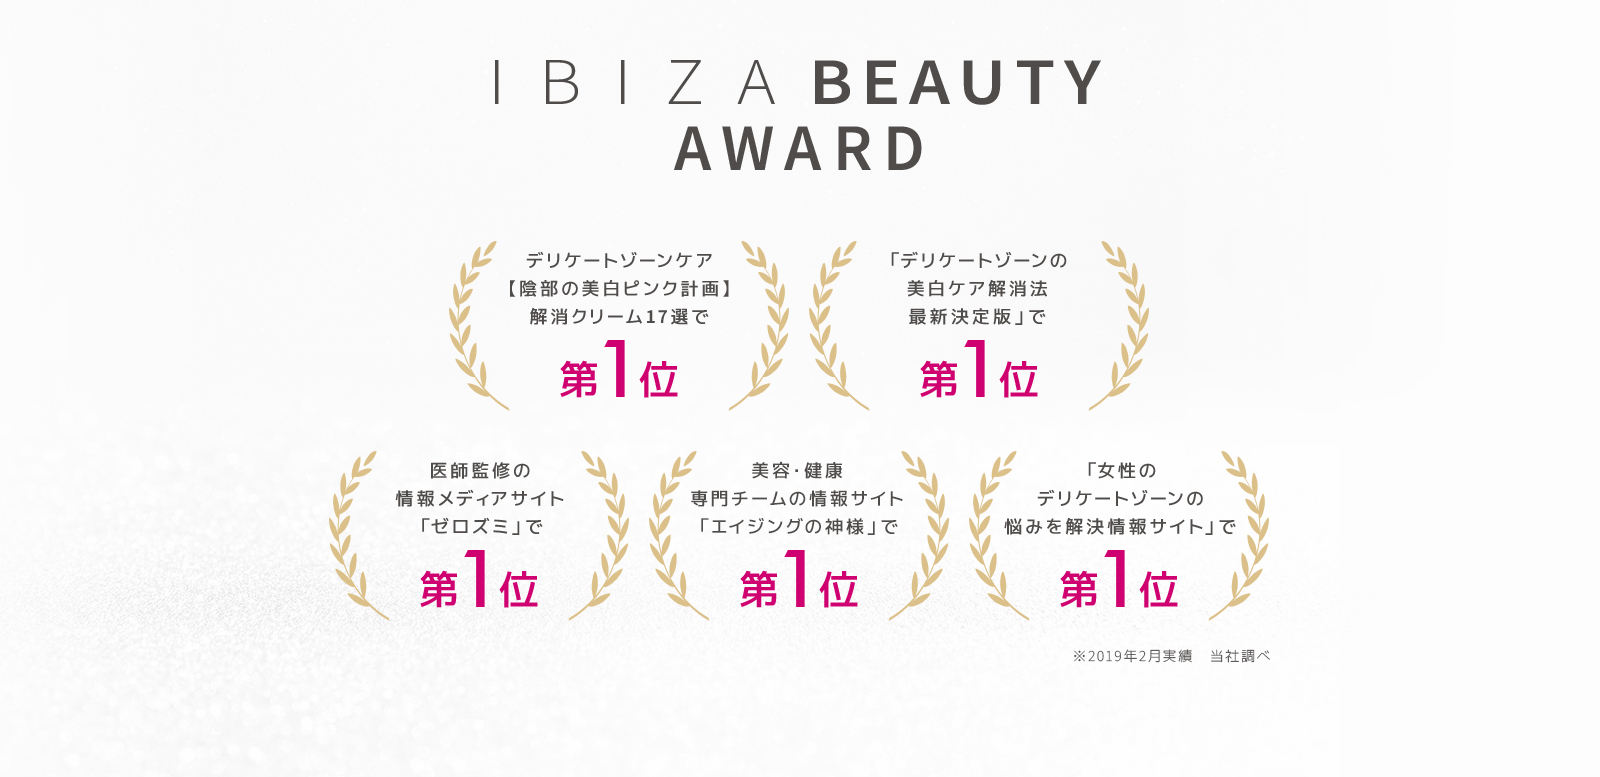 IBIZABEAUTY AWARD